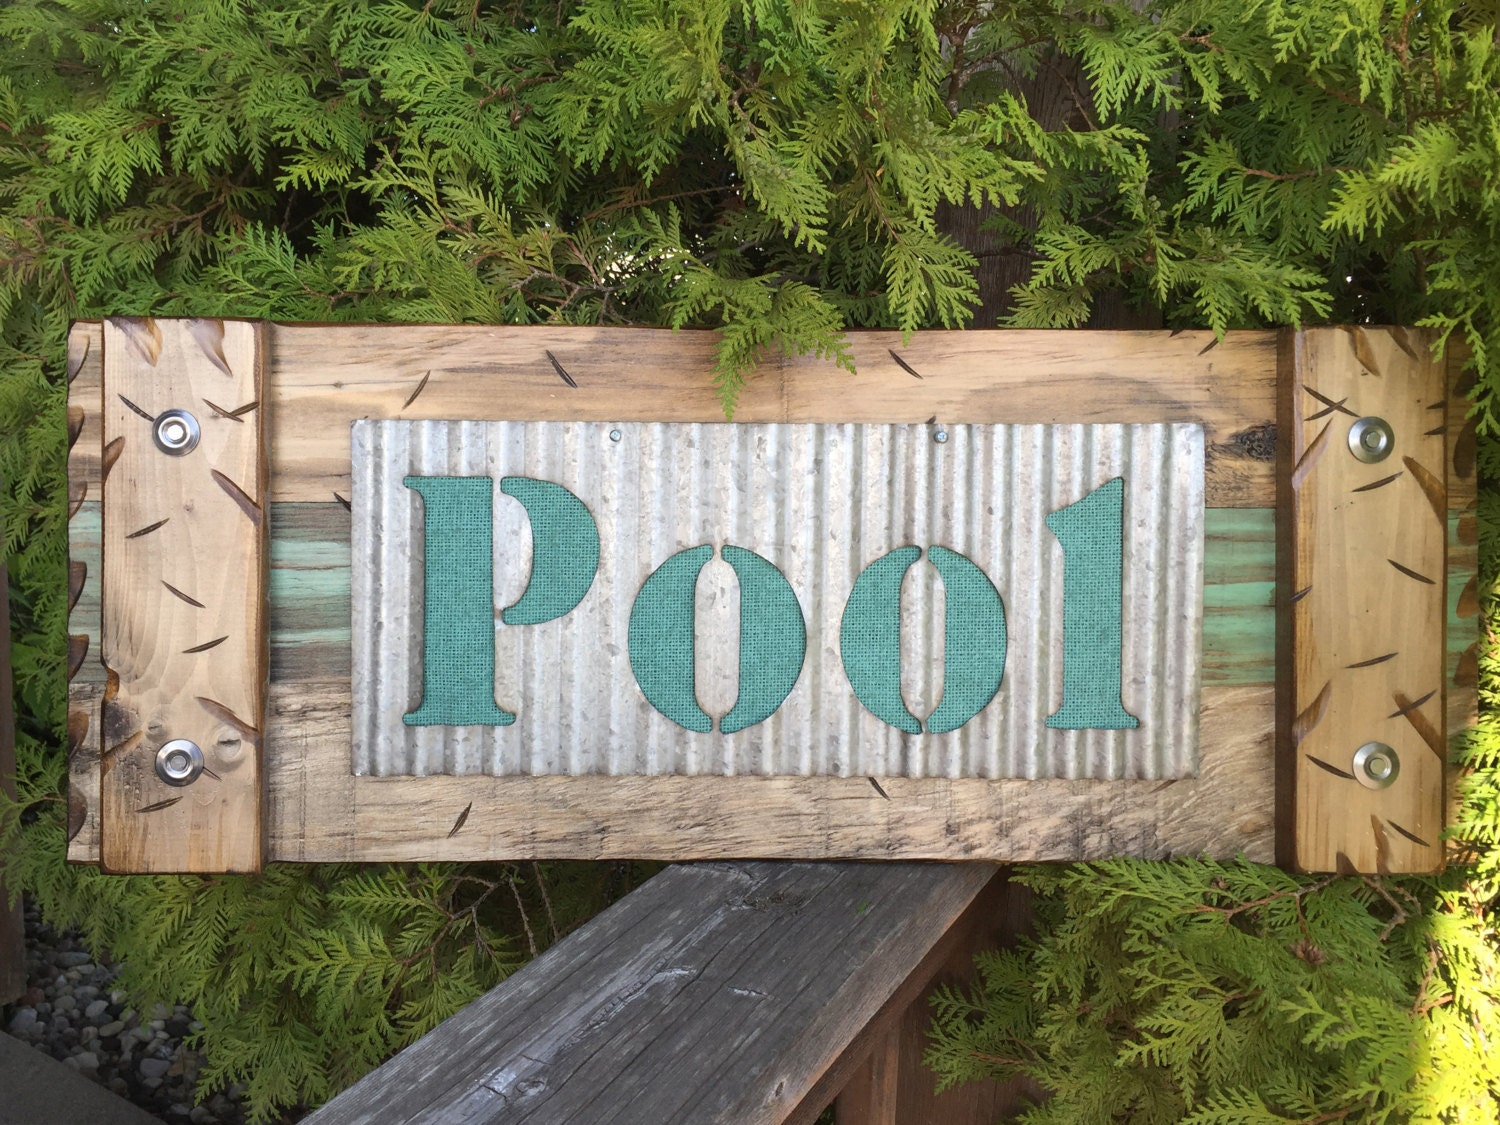 Pool Sign Wall Decor Industrial Pallet Barn Wood Ocean Summer Sea Lake Beach Wooden Home